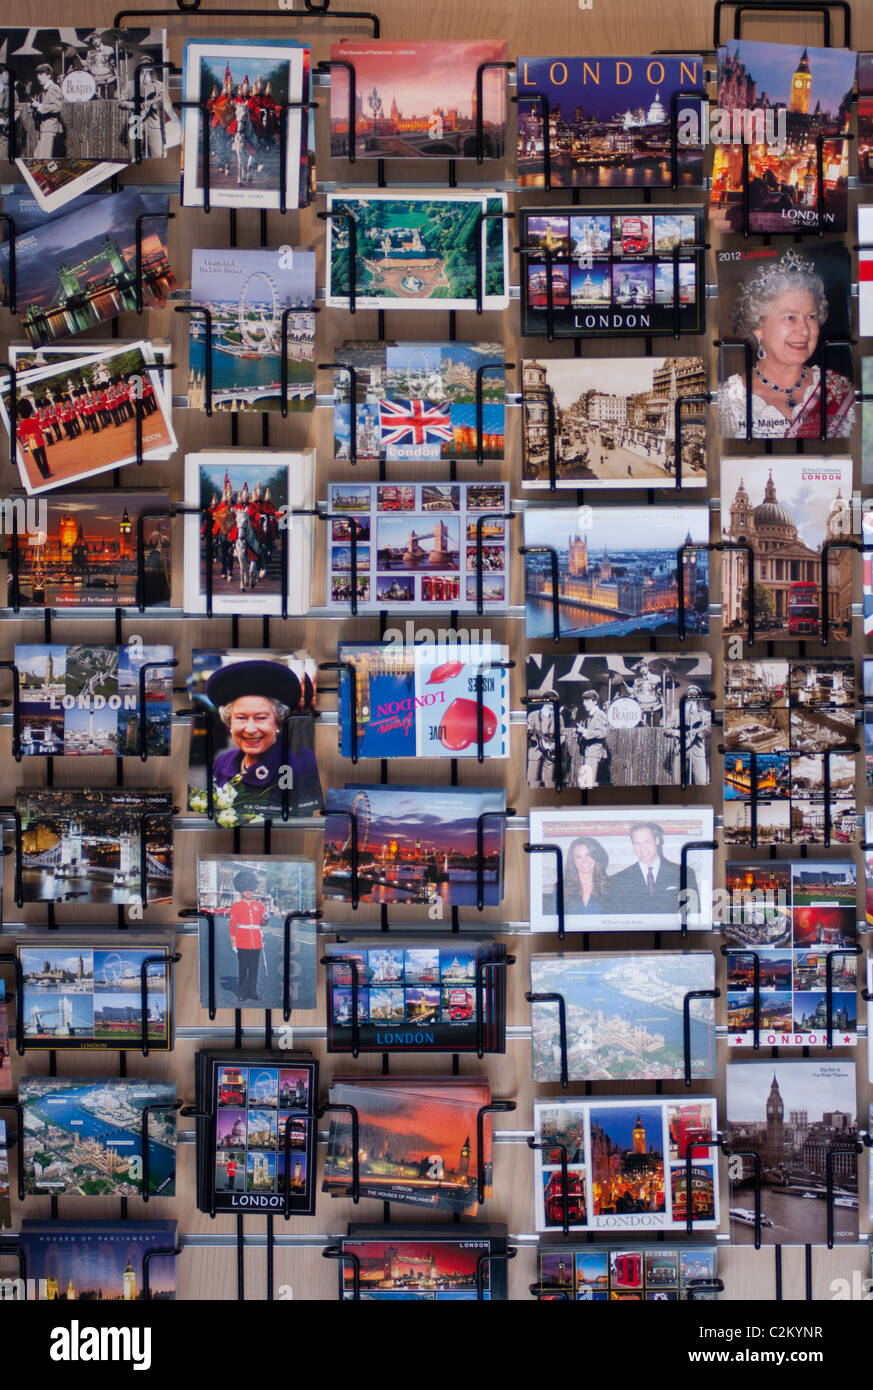 London postcards for sale. 2011. - Stock Image